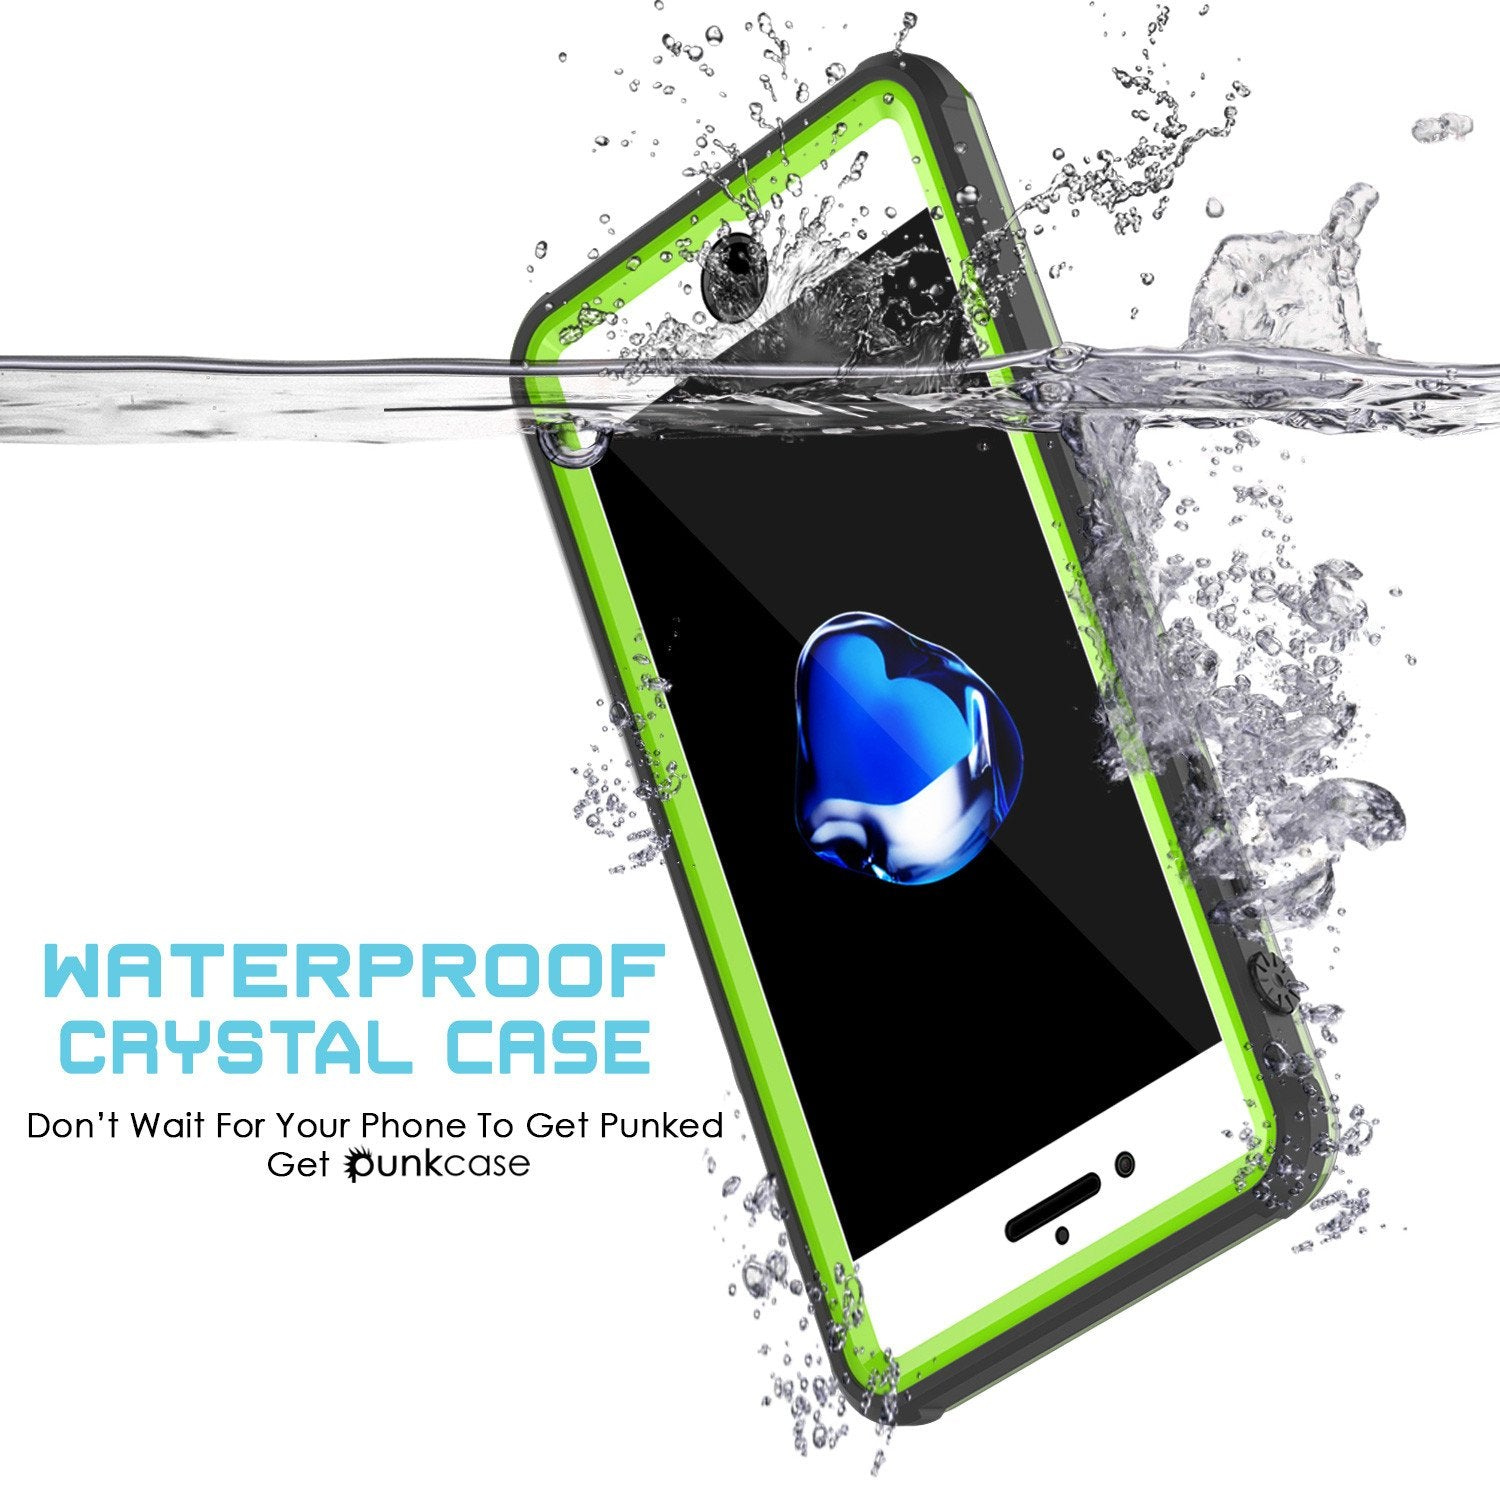 iPhone 8+ Plus Waterproof Case, PUNKcase CRYSTAL Light Green  W/ Attached Screen Protector  | Warranty